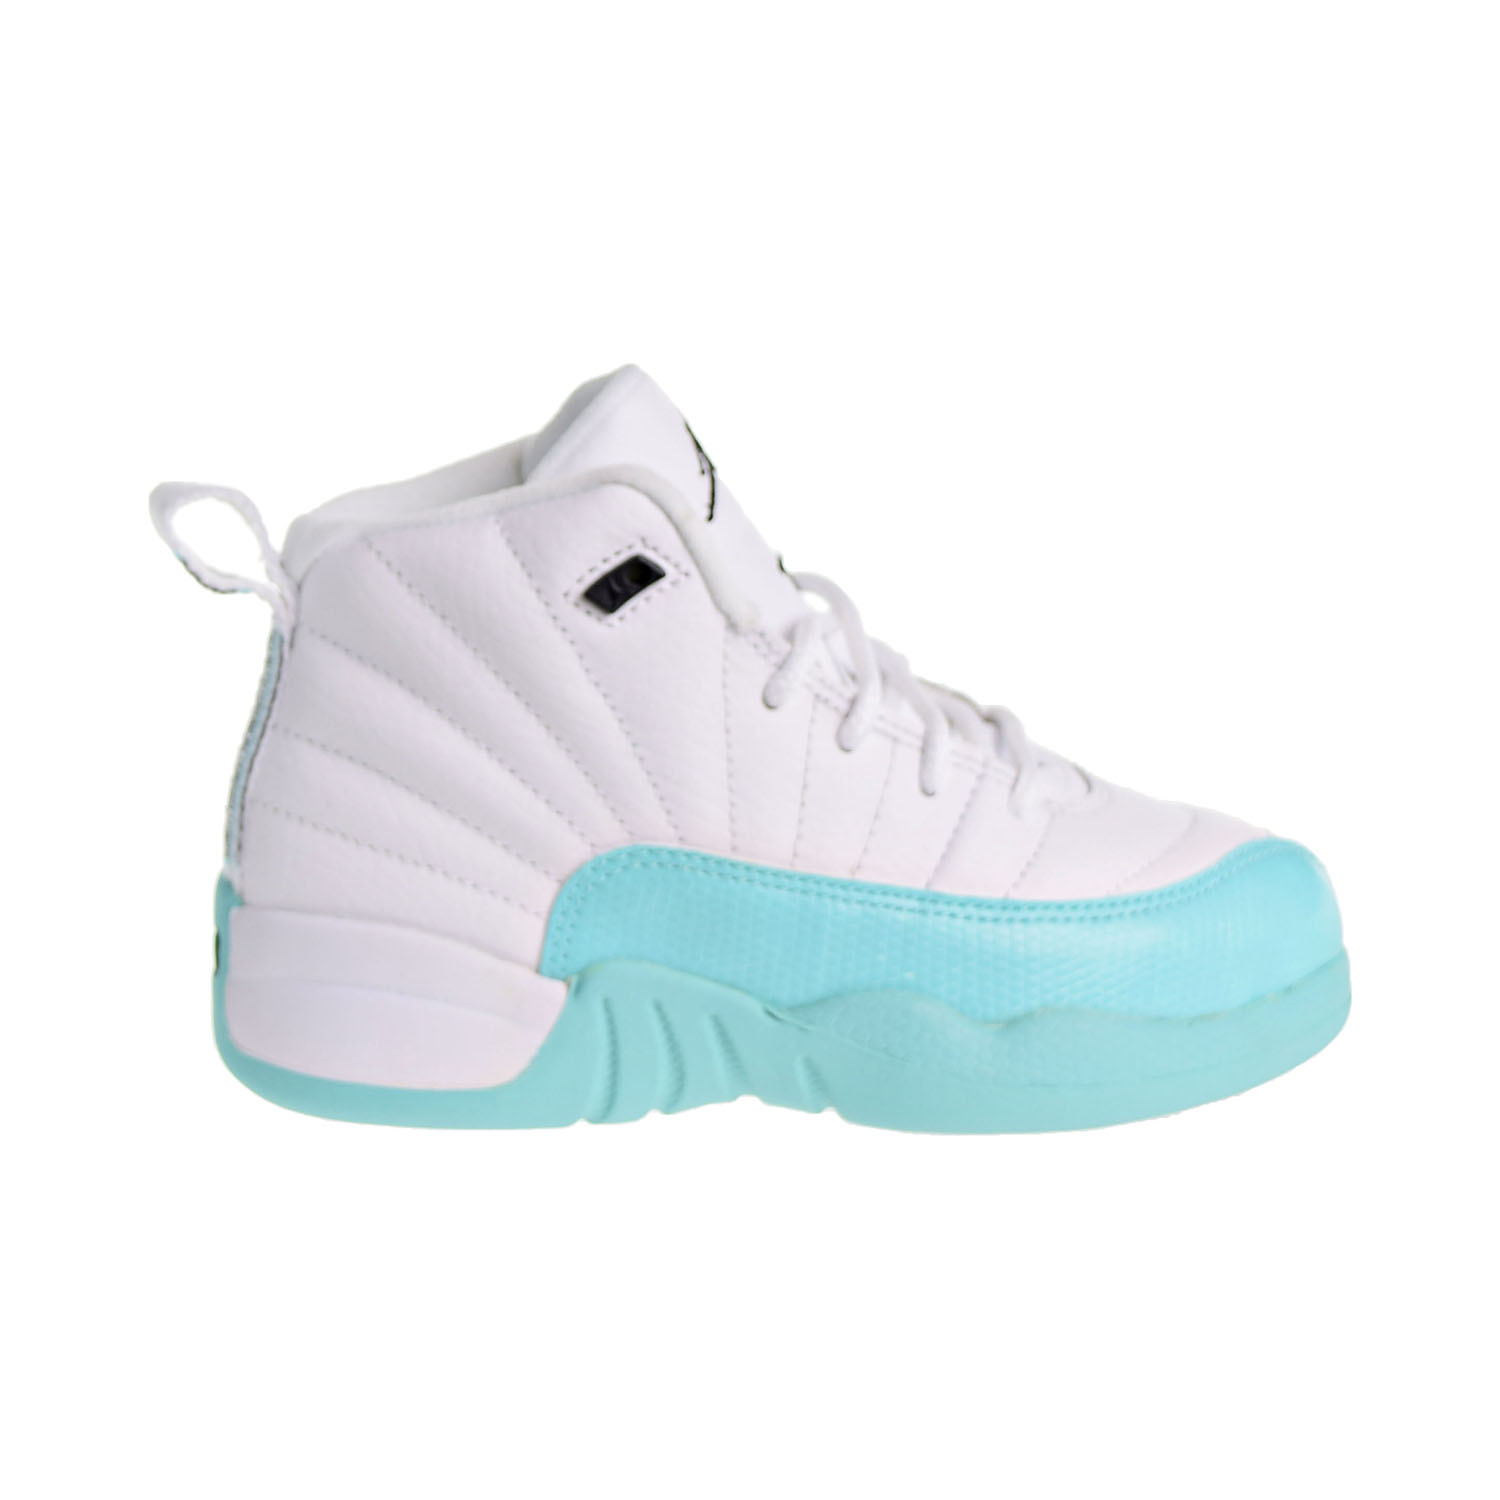 new arrival 06999 c2116 Details about Jordan 12 Retro Little Kid's Shoes White/Black/Light Aqua  510816-100